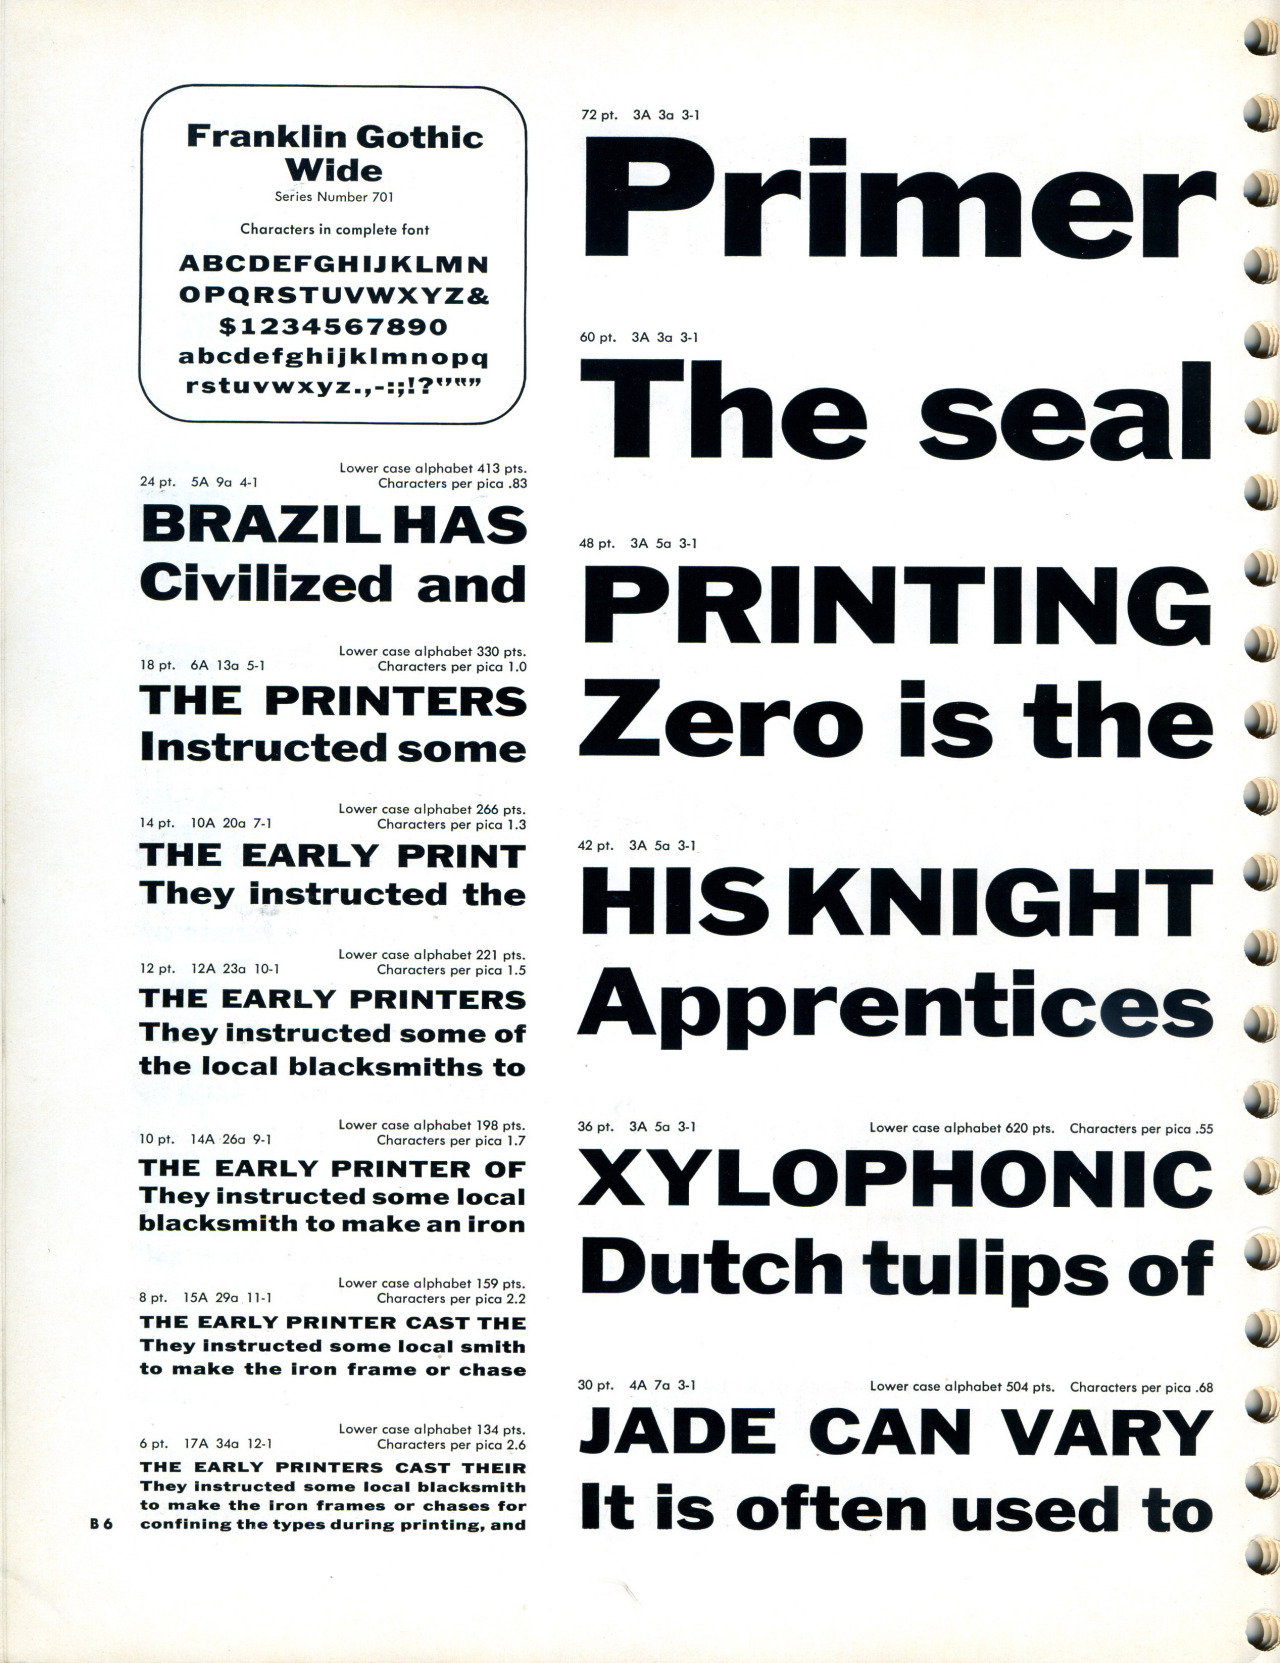 Daily Type Specimen — Josef Albers first designed these